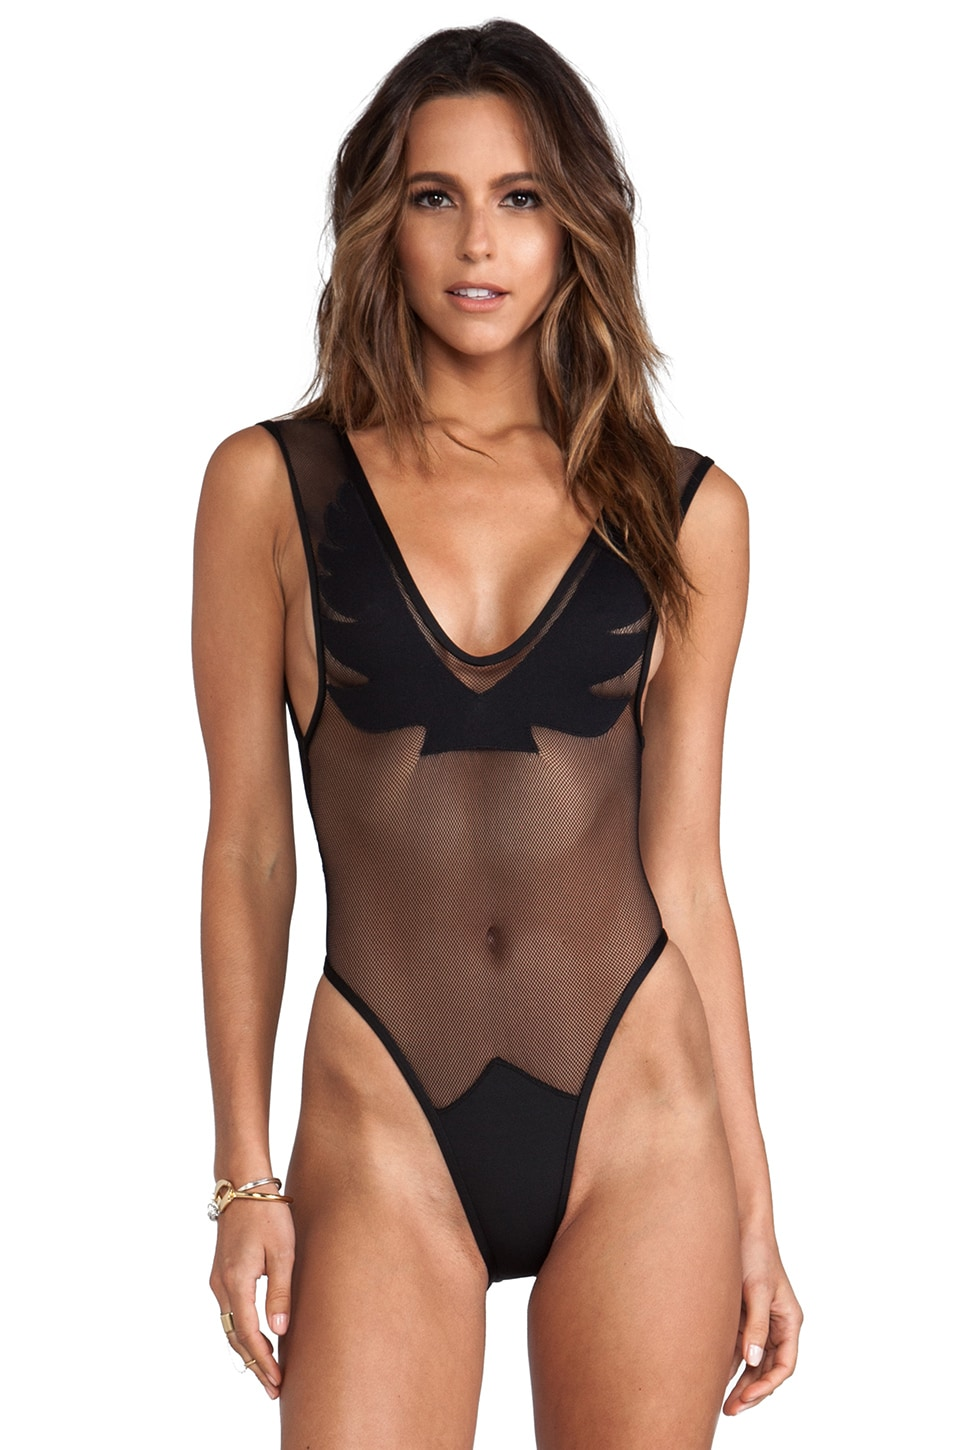 MINIMALE ANIMALE Firebird Suit in Outlaw Black